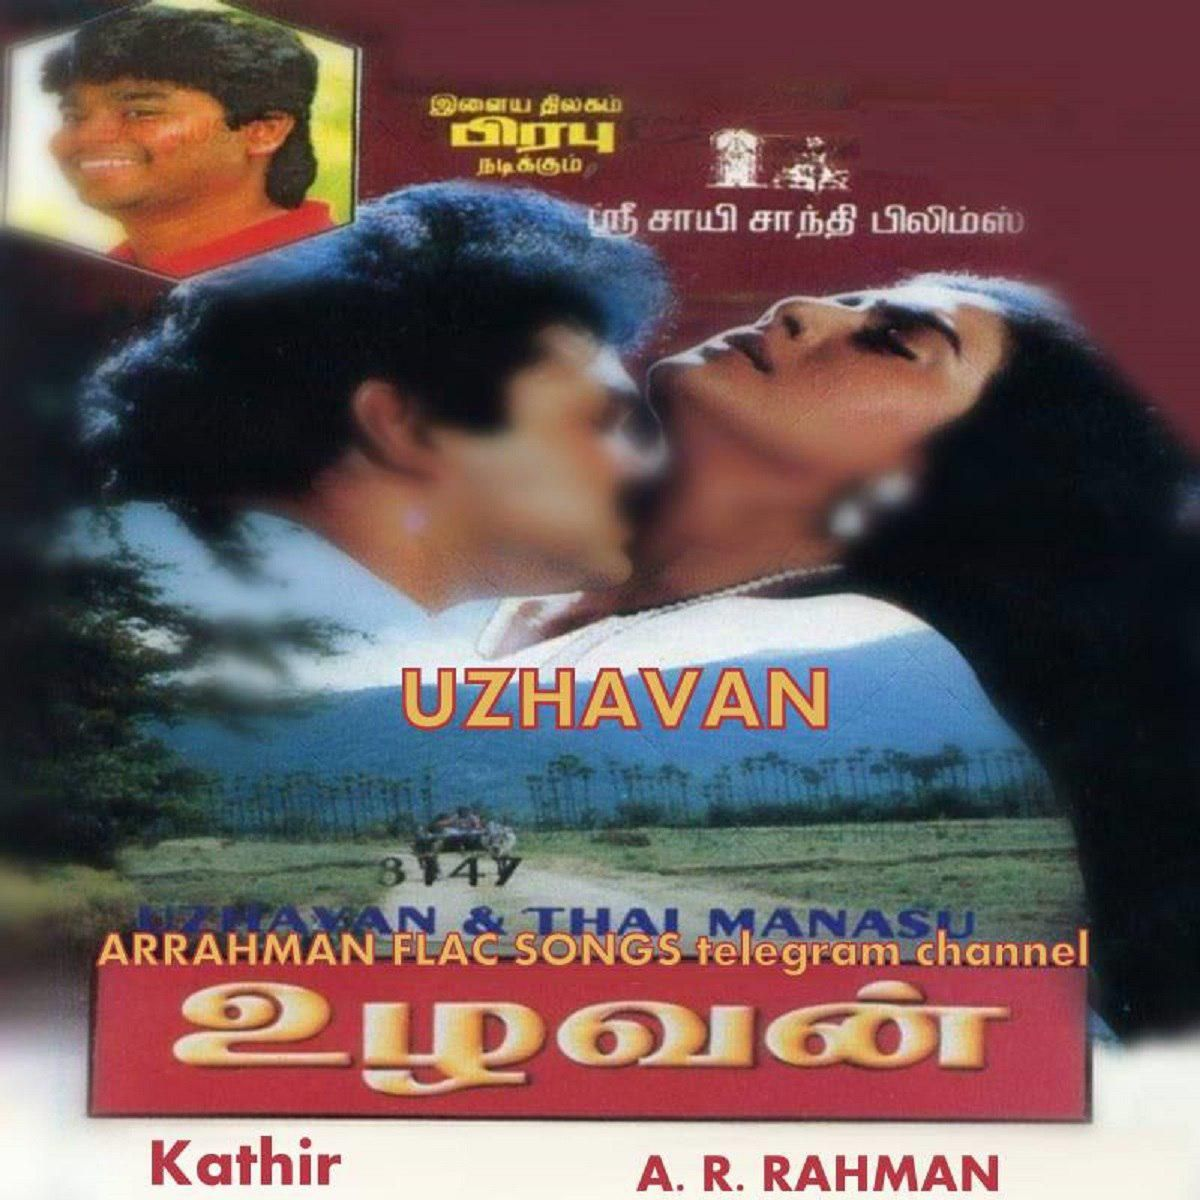 Uzhavan 1993 AudioCd Rip Lossless Flac songs - ARRAHMAN FLAC